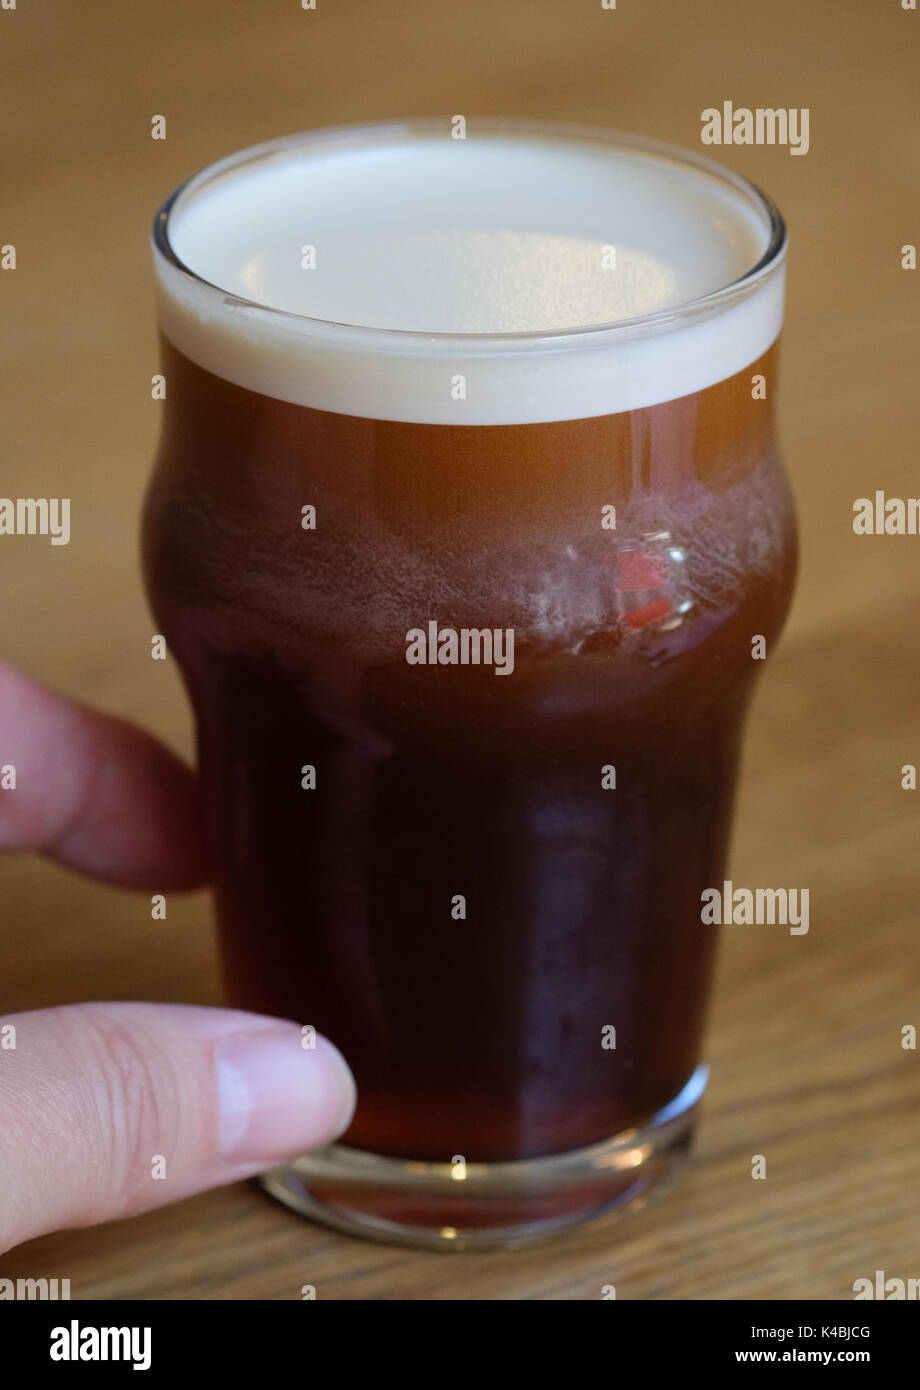 Berlin, Germany. 29th Aug, 2017. A glass of so-called nitro coffee on a table in Berlin, Germany, 29 August 2017. The drink is made by pouring cold-brewed coffee to which nitrogen has been added from a tap. The result is a coffee that is silkier and creamier. Photo: Jens Kalaene/dpa-Zentralbild/ZB/dpa/Alamy Live News - Stock Image